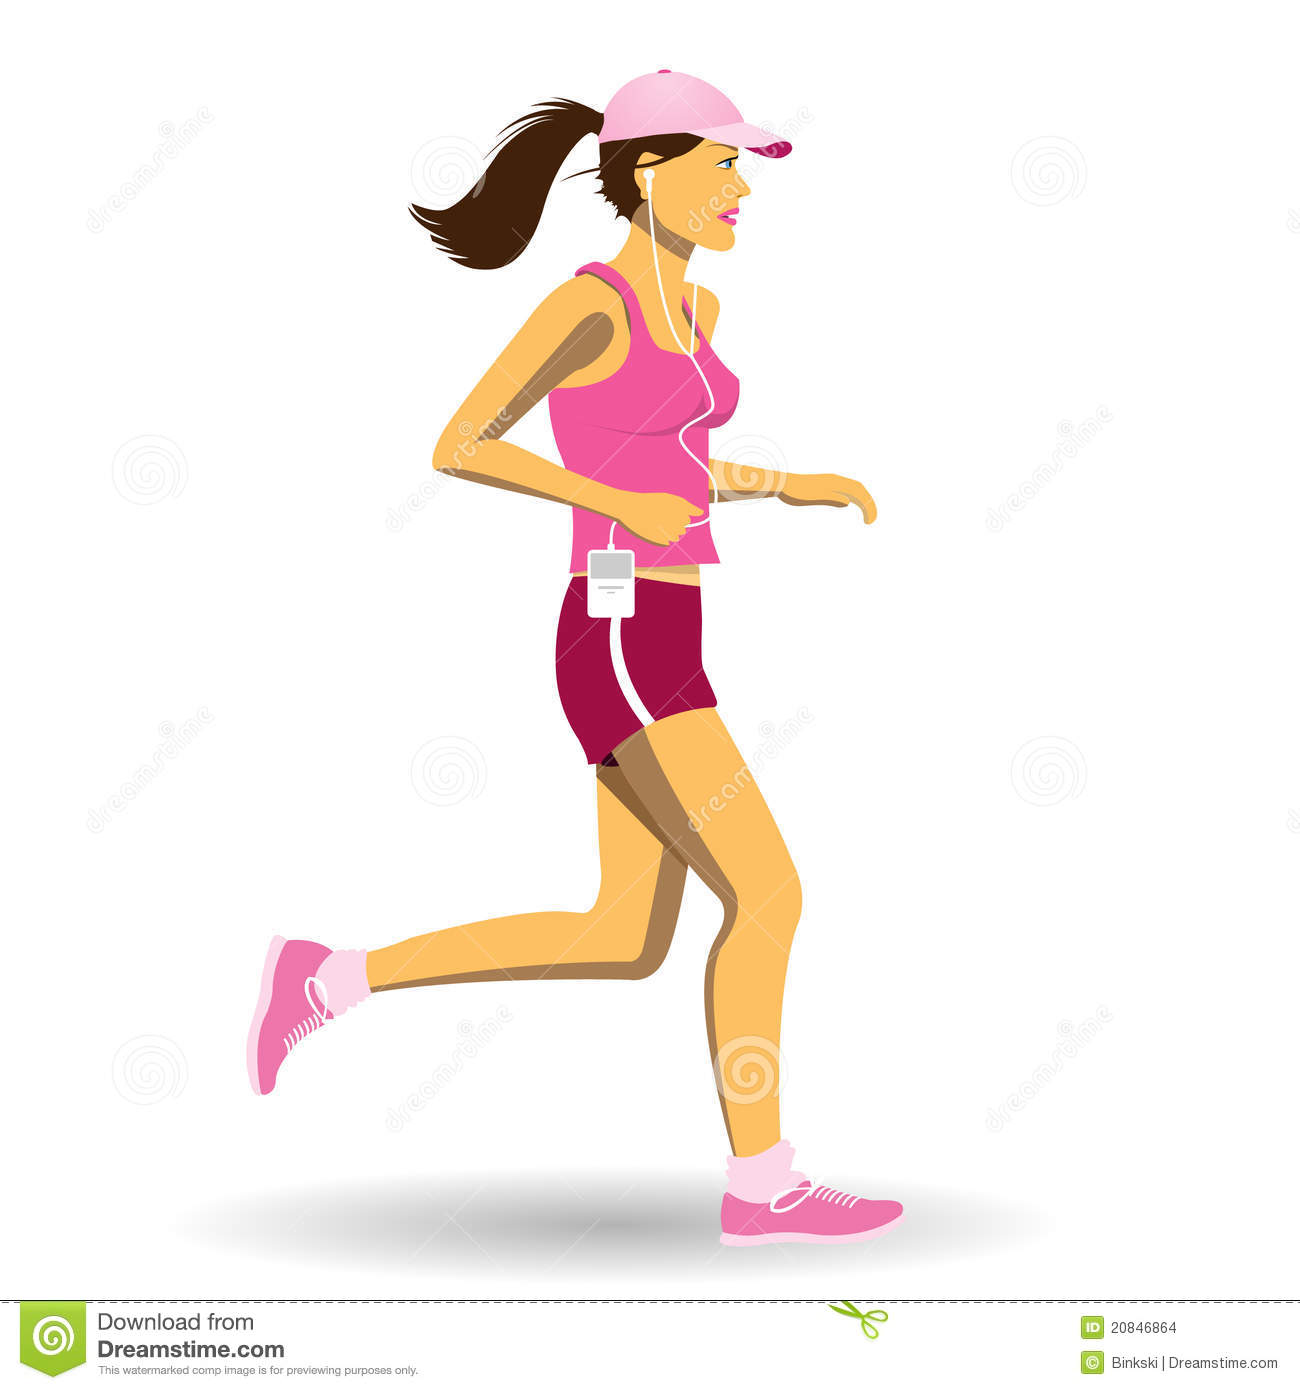 Woman Jogging Stock Images - Image: 20846864